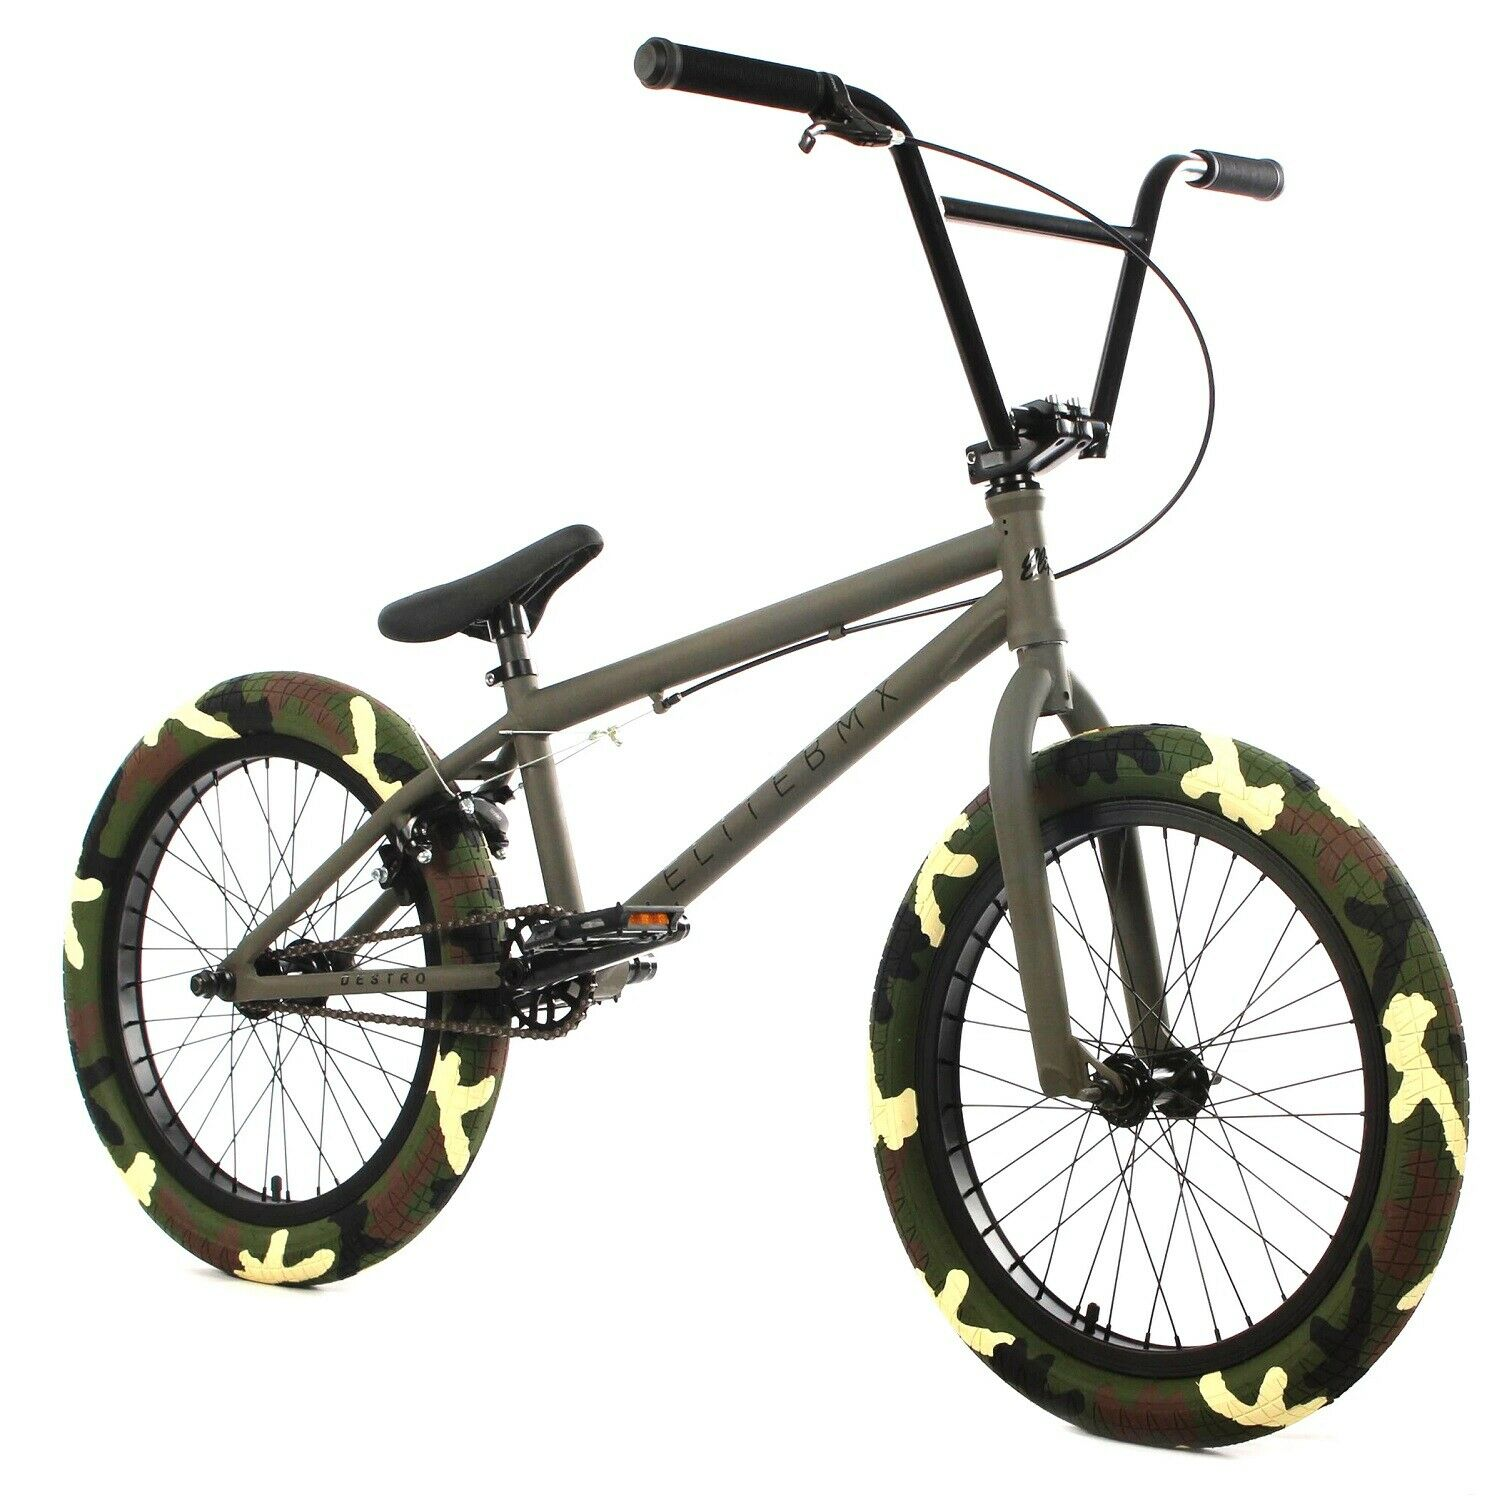 Elite 20 Inch Freestyle BMX Destro Bike Crank Army Green